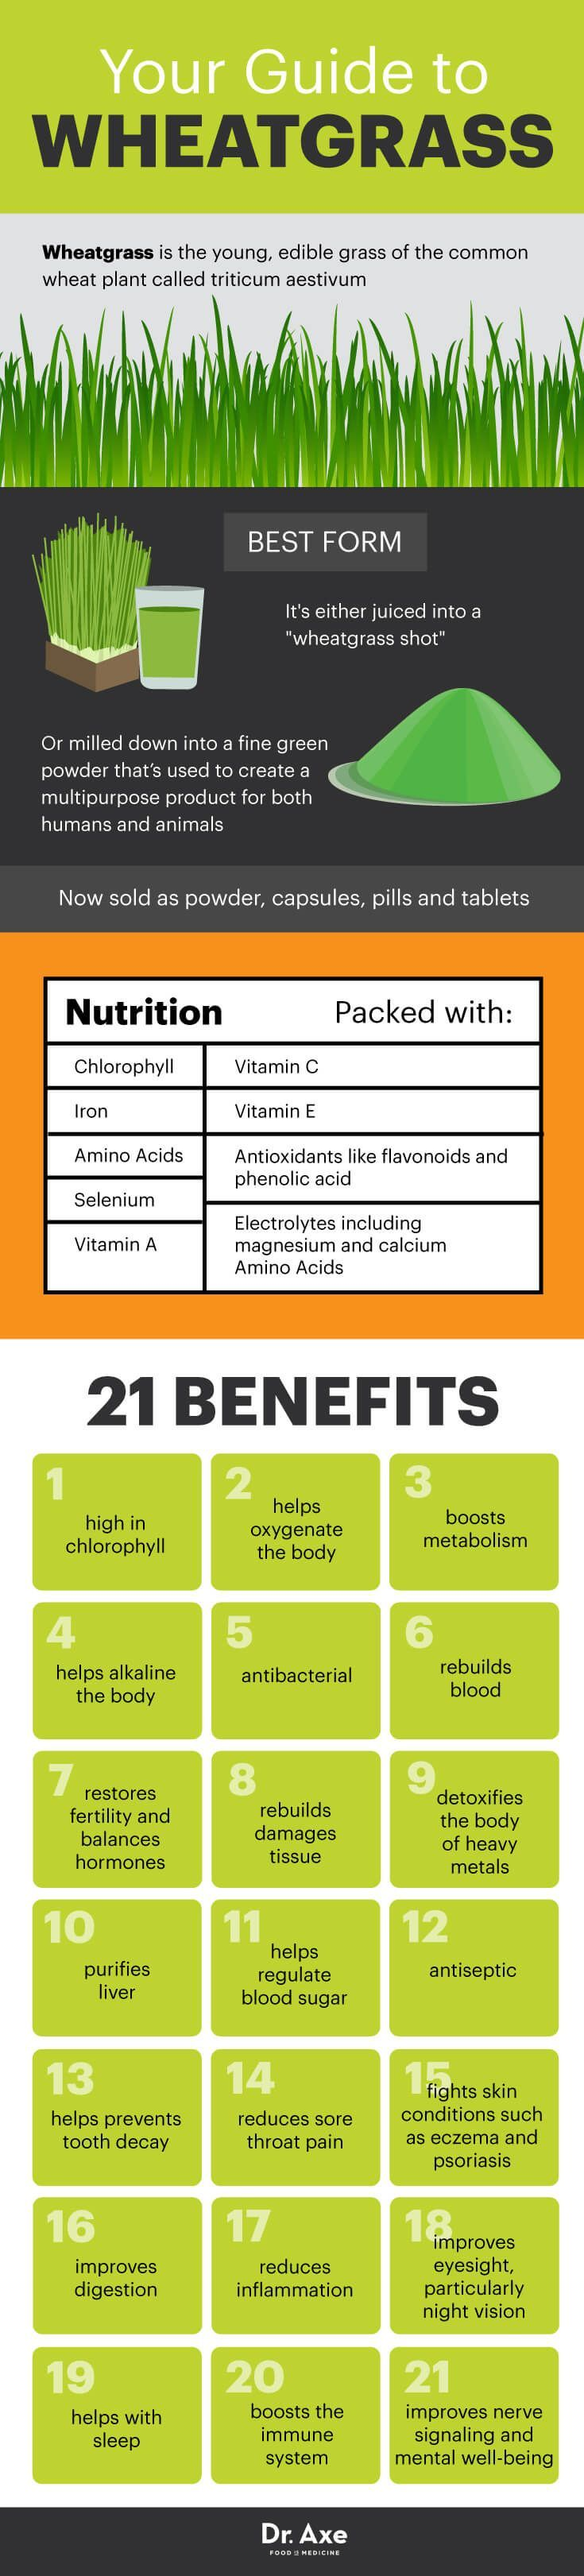 Wheatgrass Benefits, Nutrition & How to Use - Dr. Axe